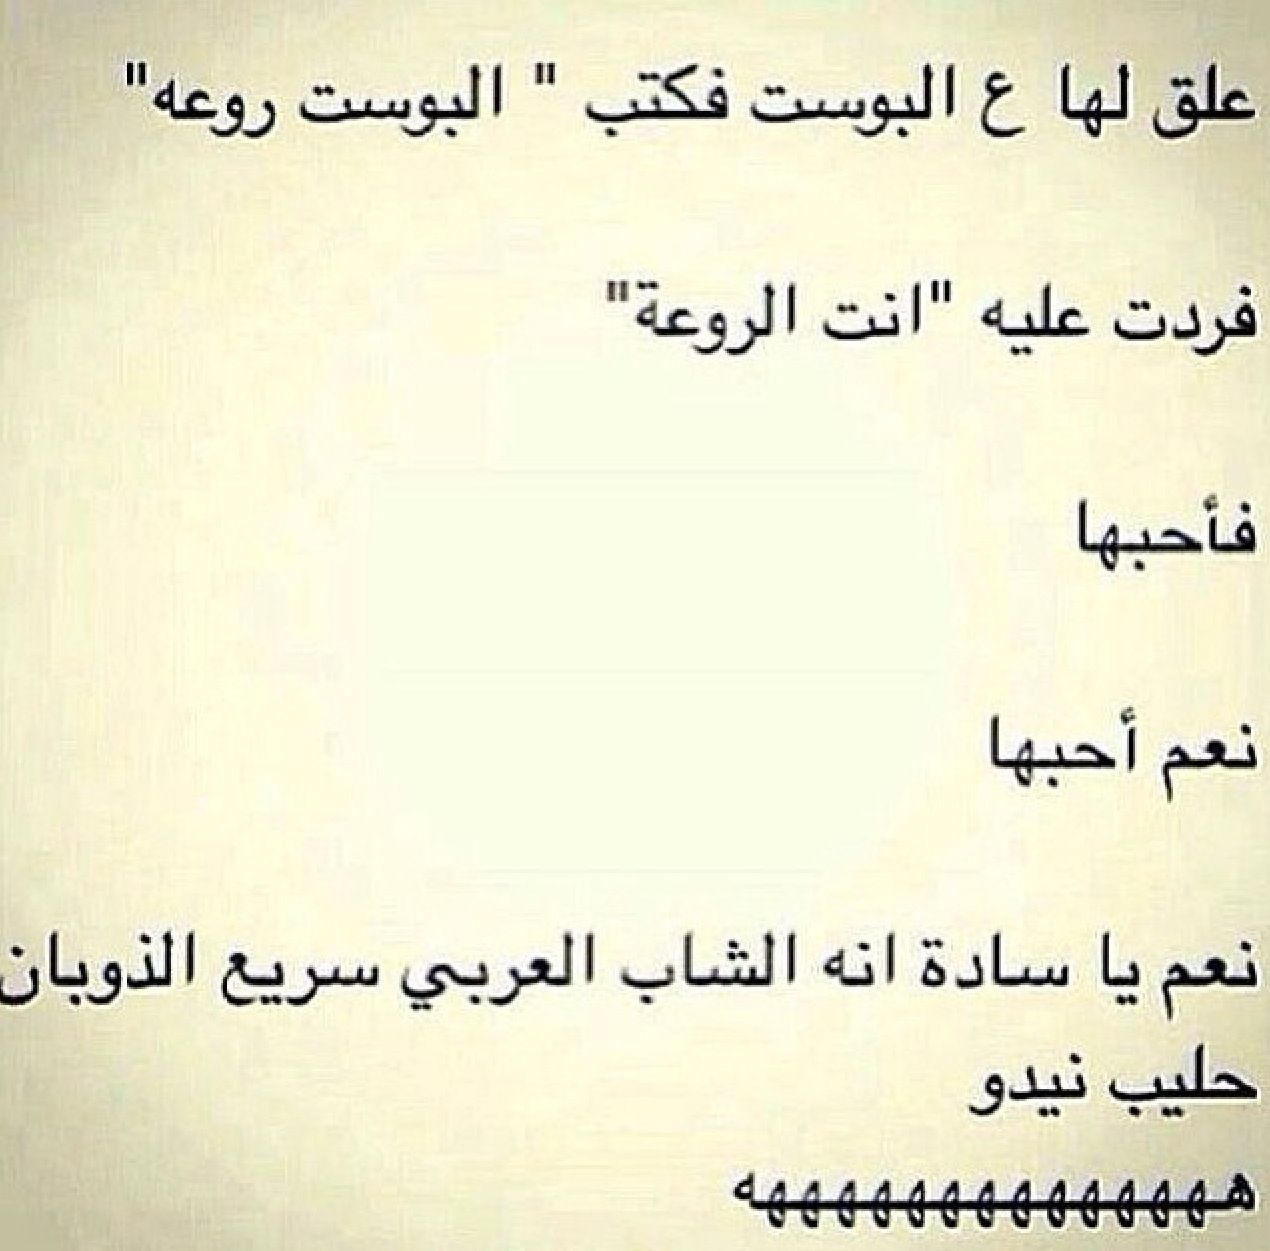 Pin By Ghizo On Yenyeyautnihg Funny Arabic Quotes Laughing Quotes Arabic Funny